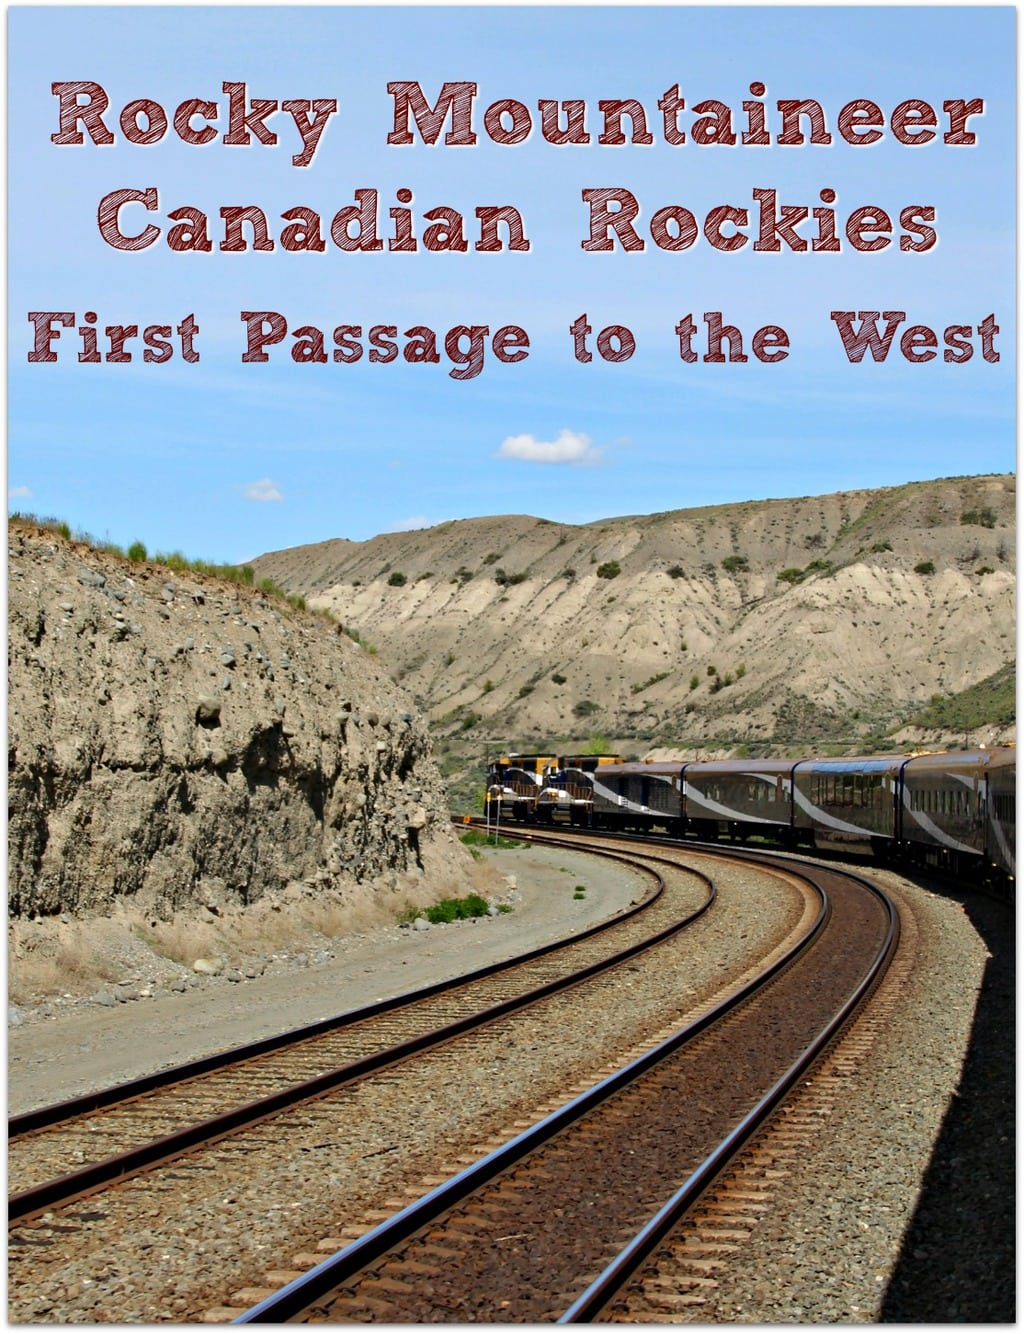 If you're thinking about taking a trip to see the Canadian Rockies on Rocky Mountaineer, don't think any further, just book it. Now that I have experienced it for myself, I can honestly say it is the trip of a lifetime. And there's no better time than during Canada's 150th birthday.